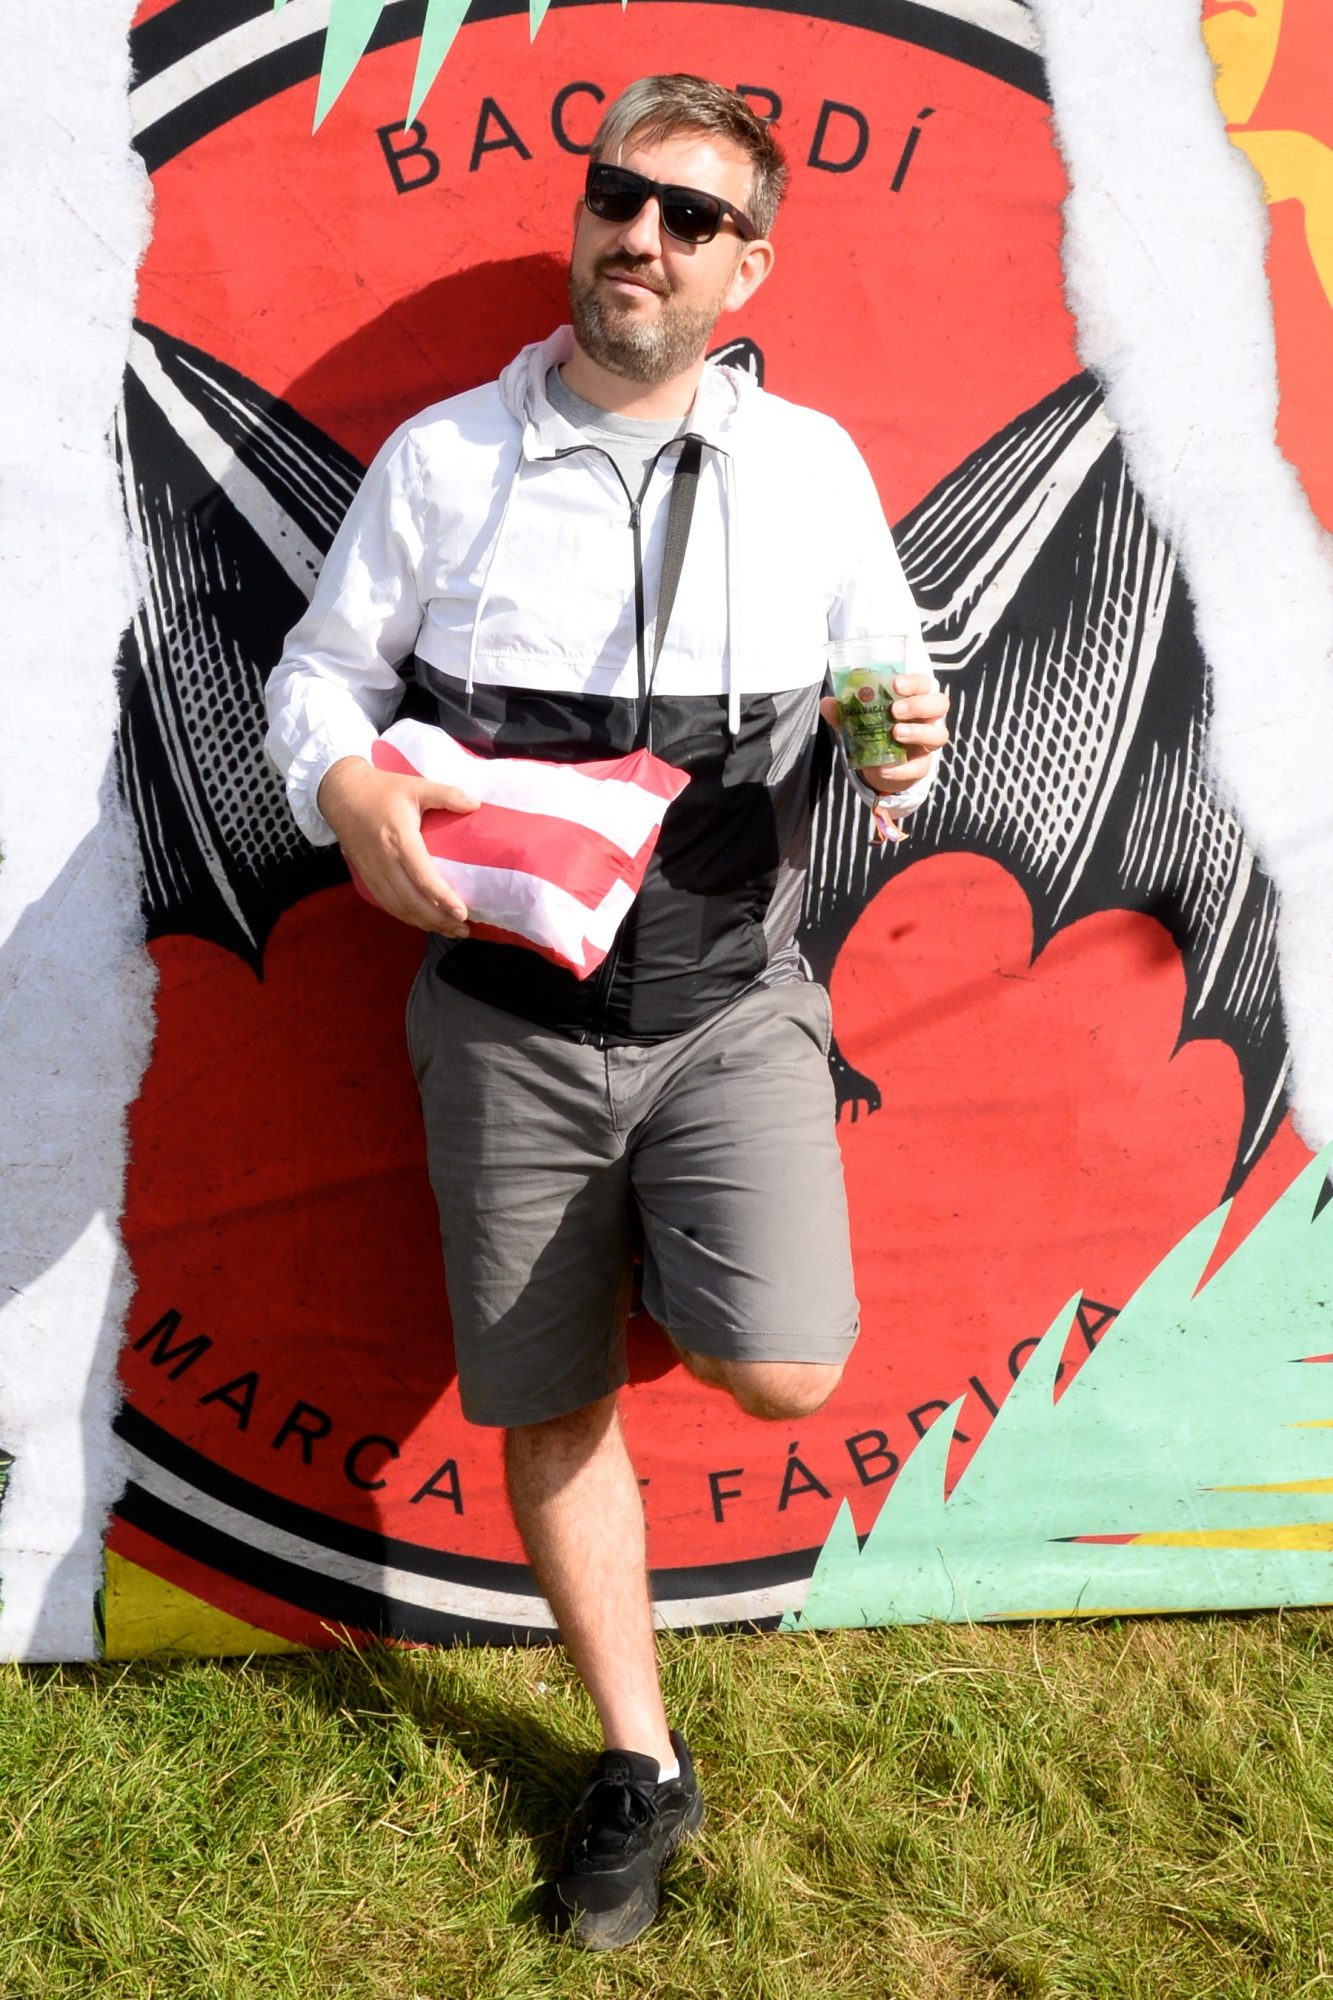 31st August 2019. Roaming O'Sullivan pictured at Casa Bacardi on day 2 of Electric Picnic. Photo: Justin Farrelly.